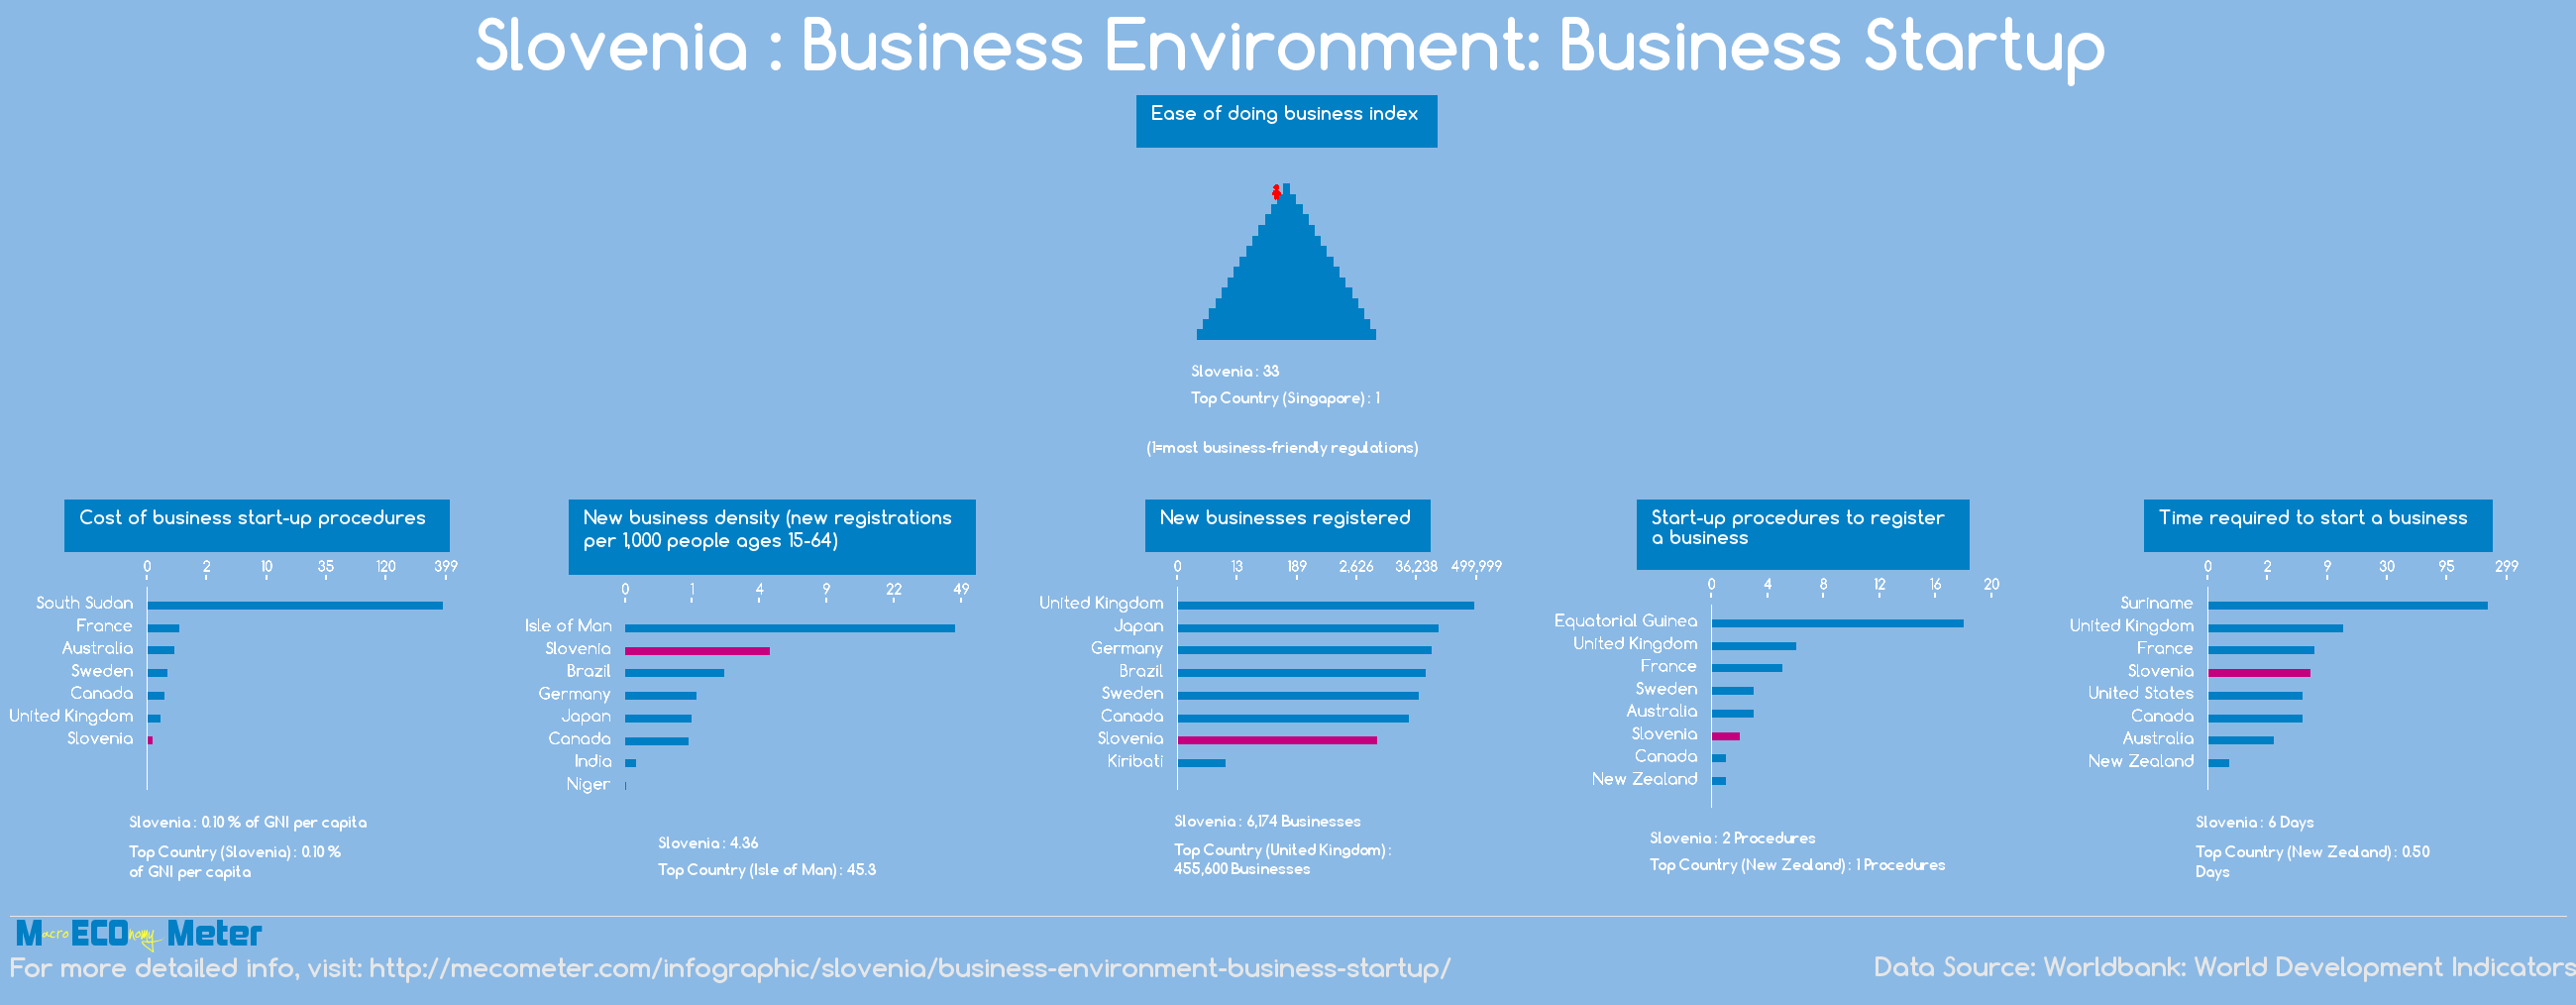 Slovenia : Business Environment: Business Startup